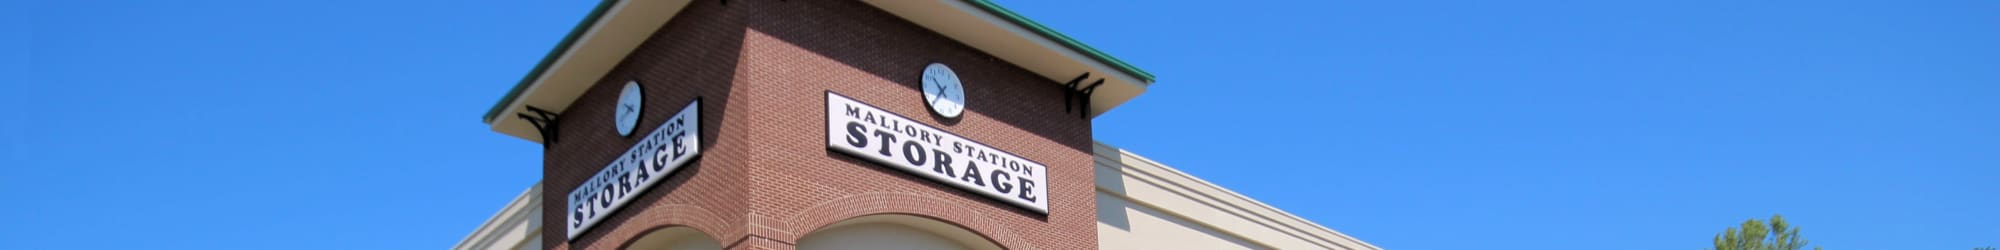 Mallory Station Storage locations